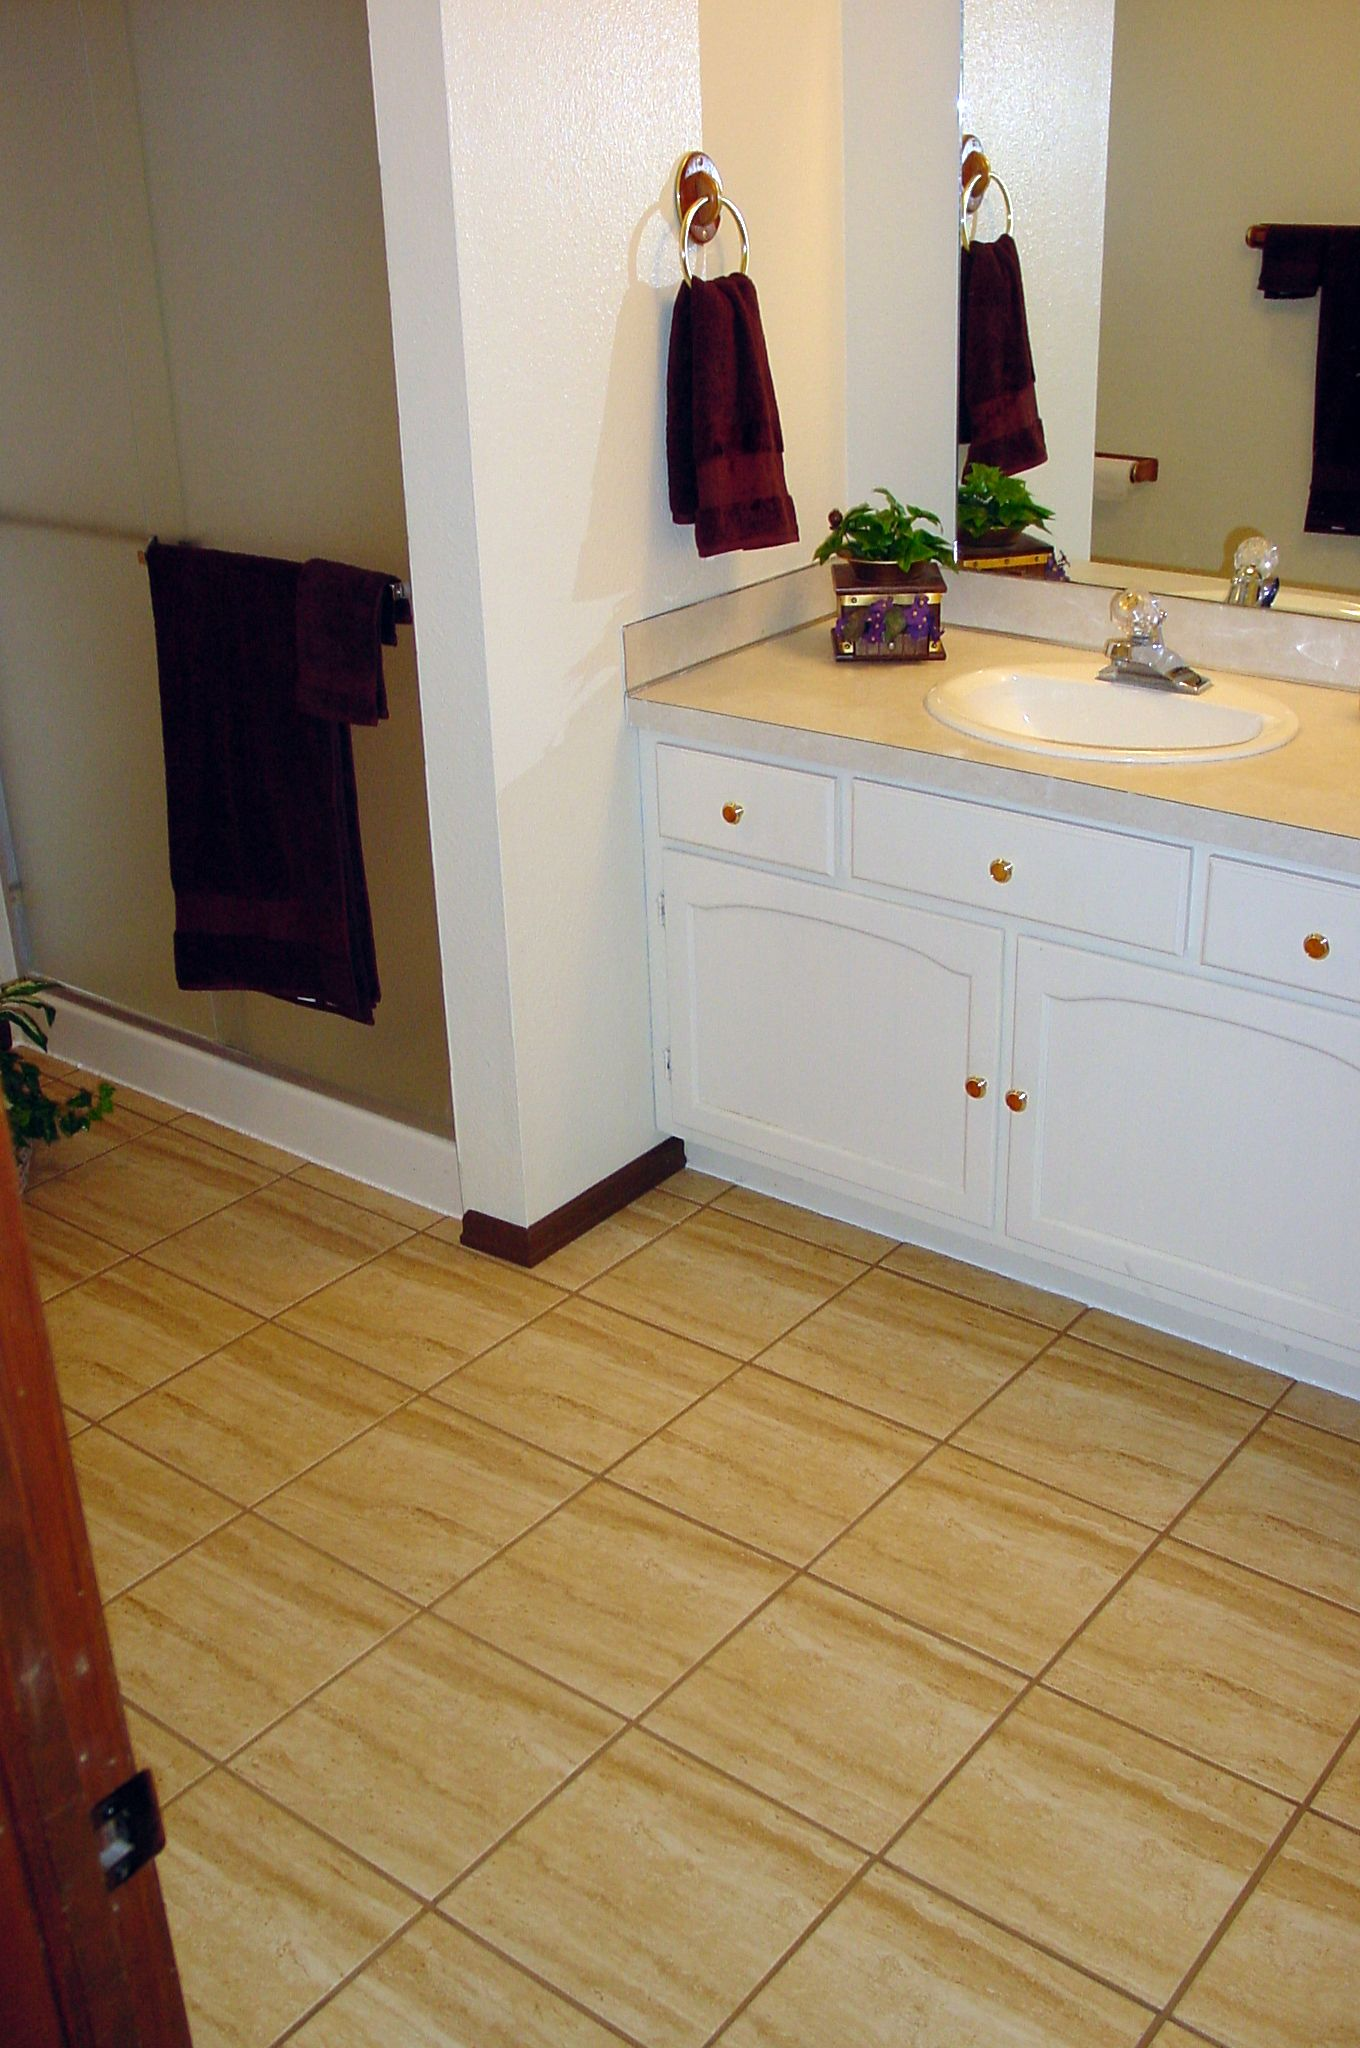 Floating Tile Floor Over Sand Bed Porcelain Ed Concrete Slab Would This Also Be Good On Second Plywood Backer Board